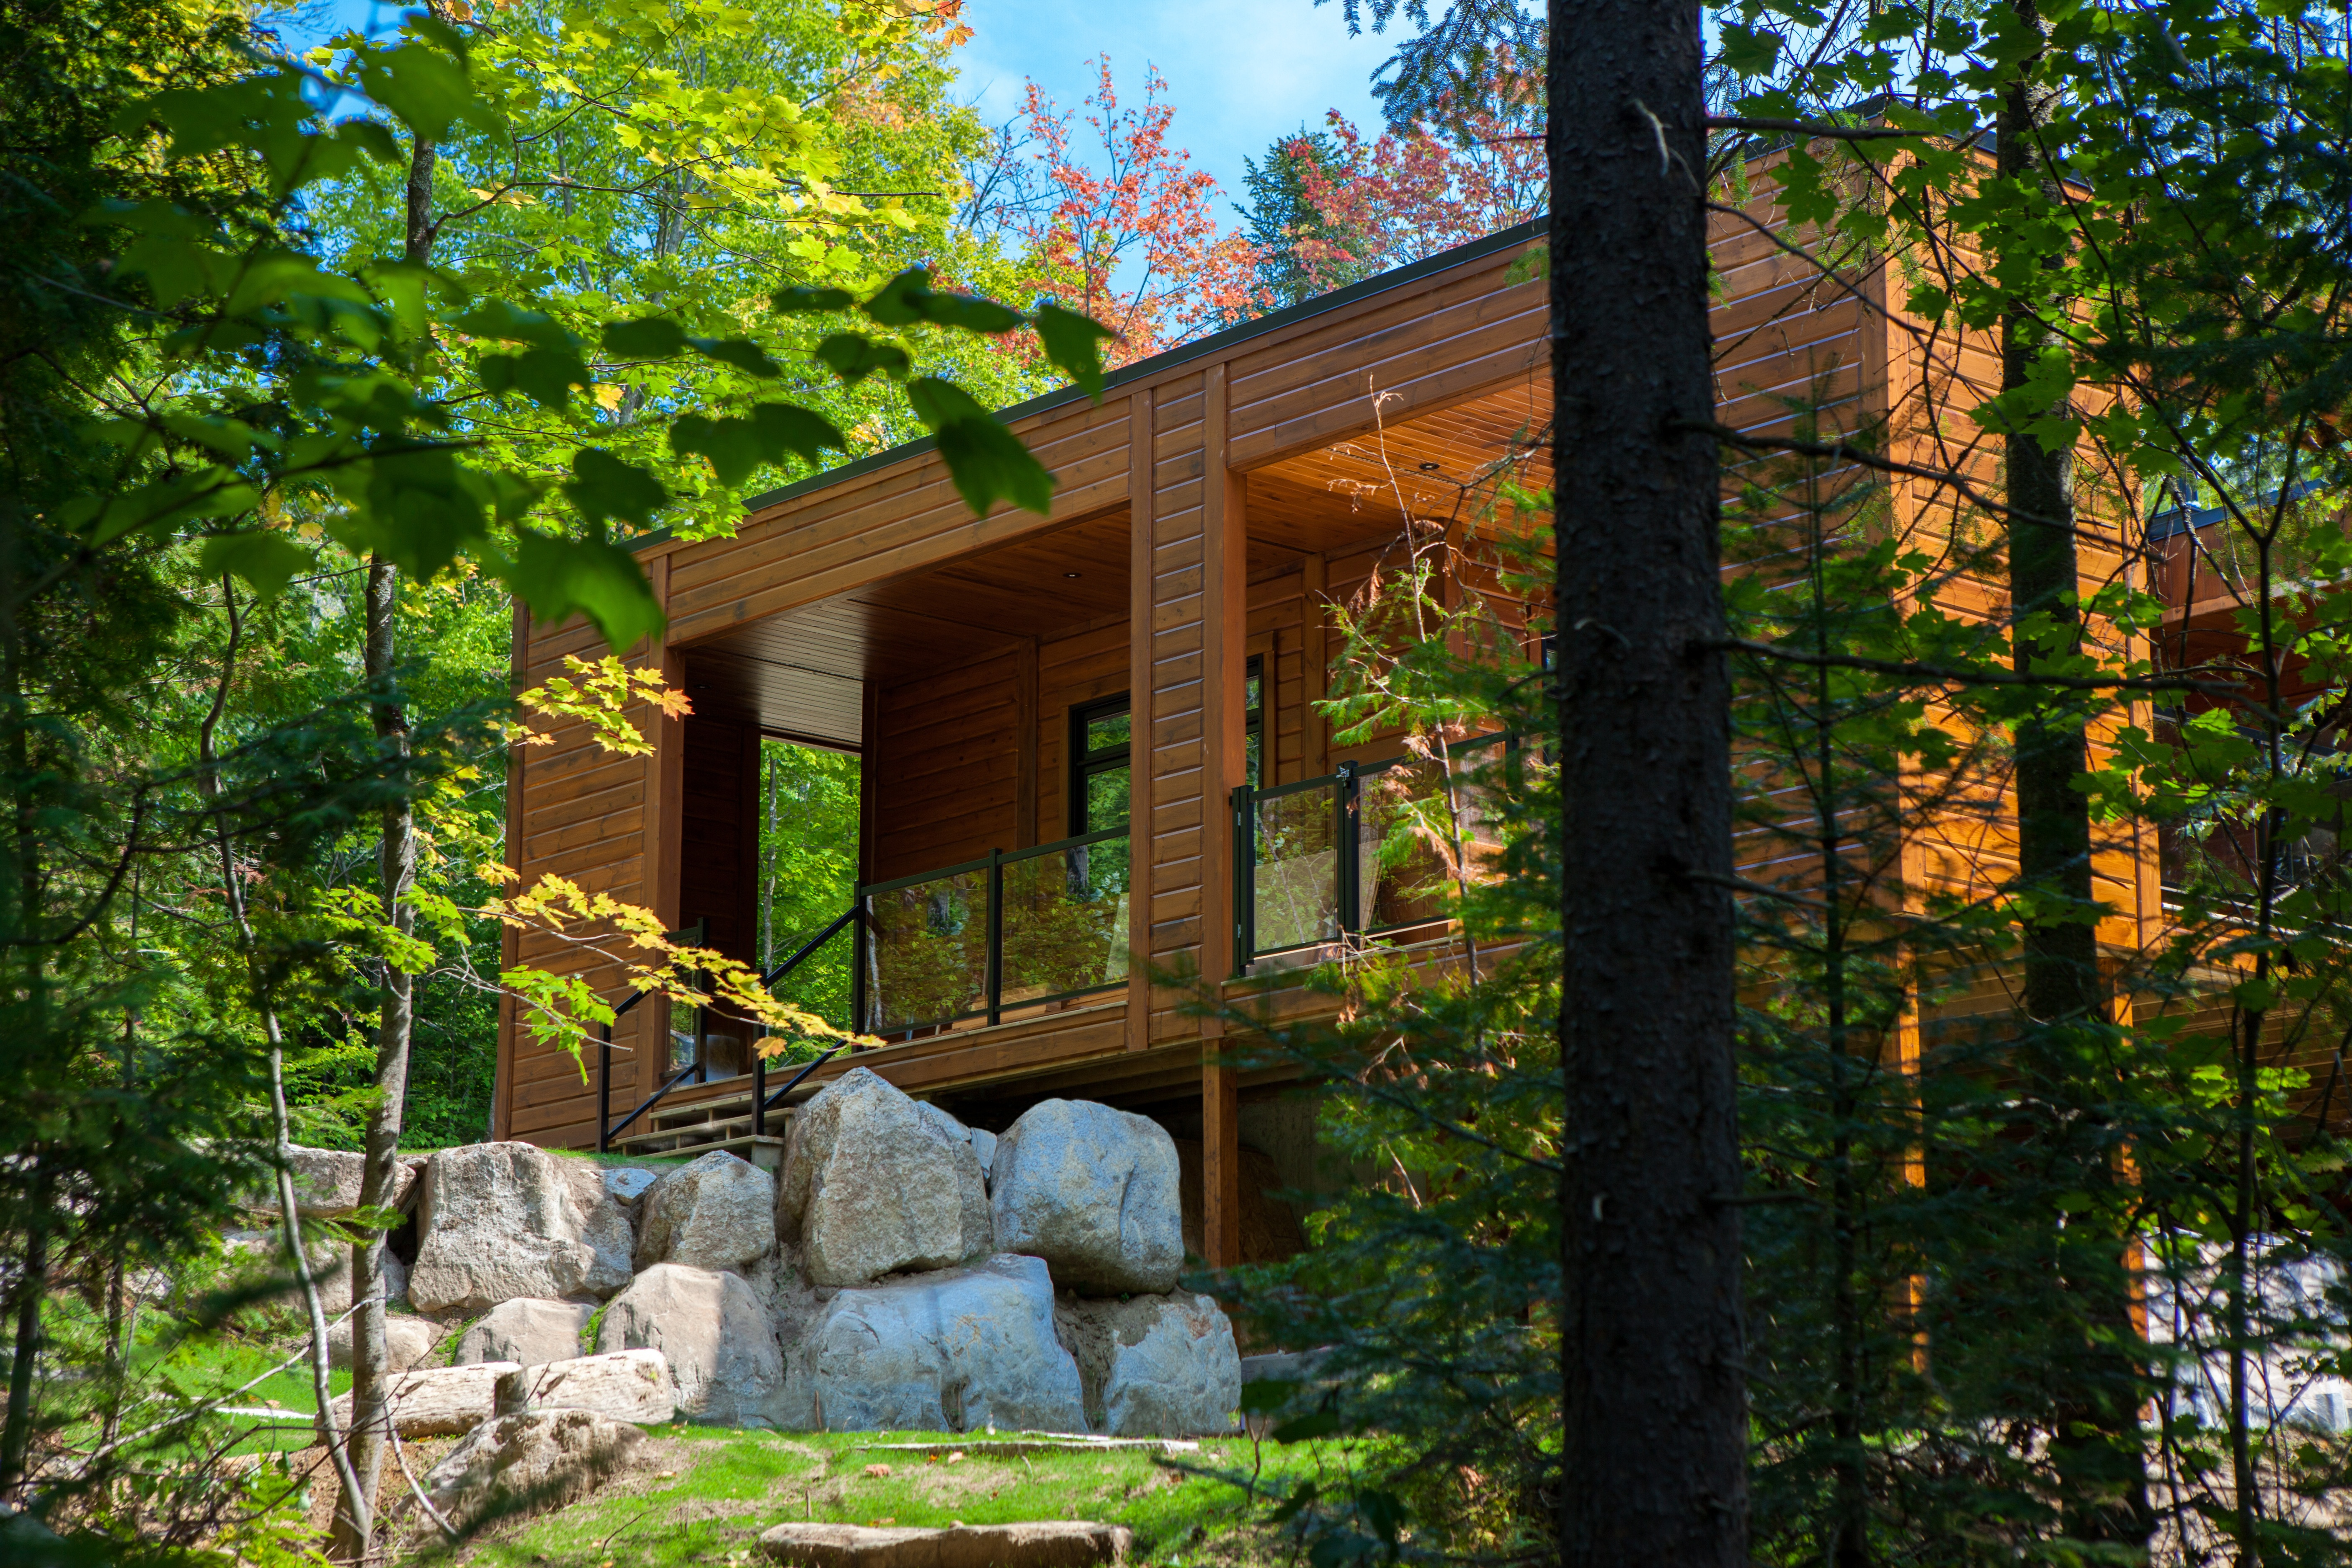 Timber Block Engineered Home - Build Green